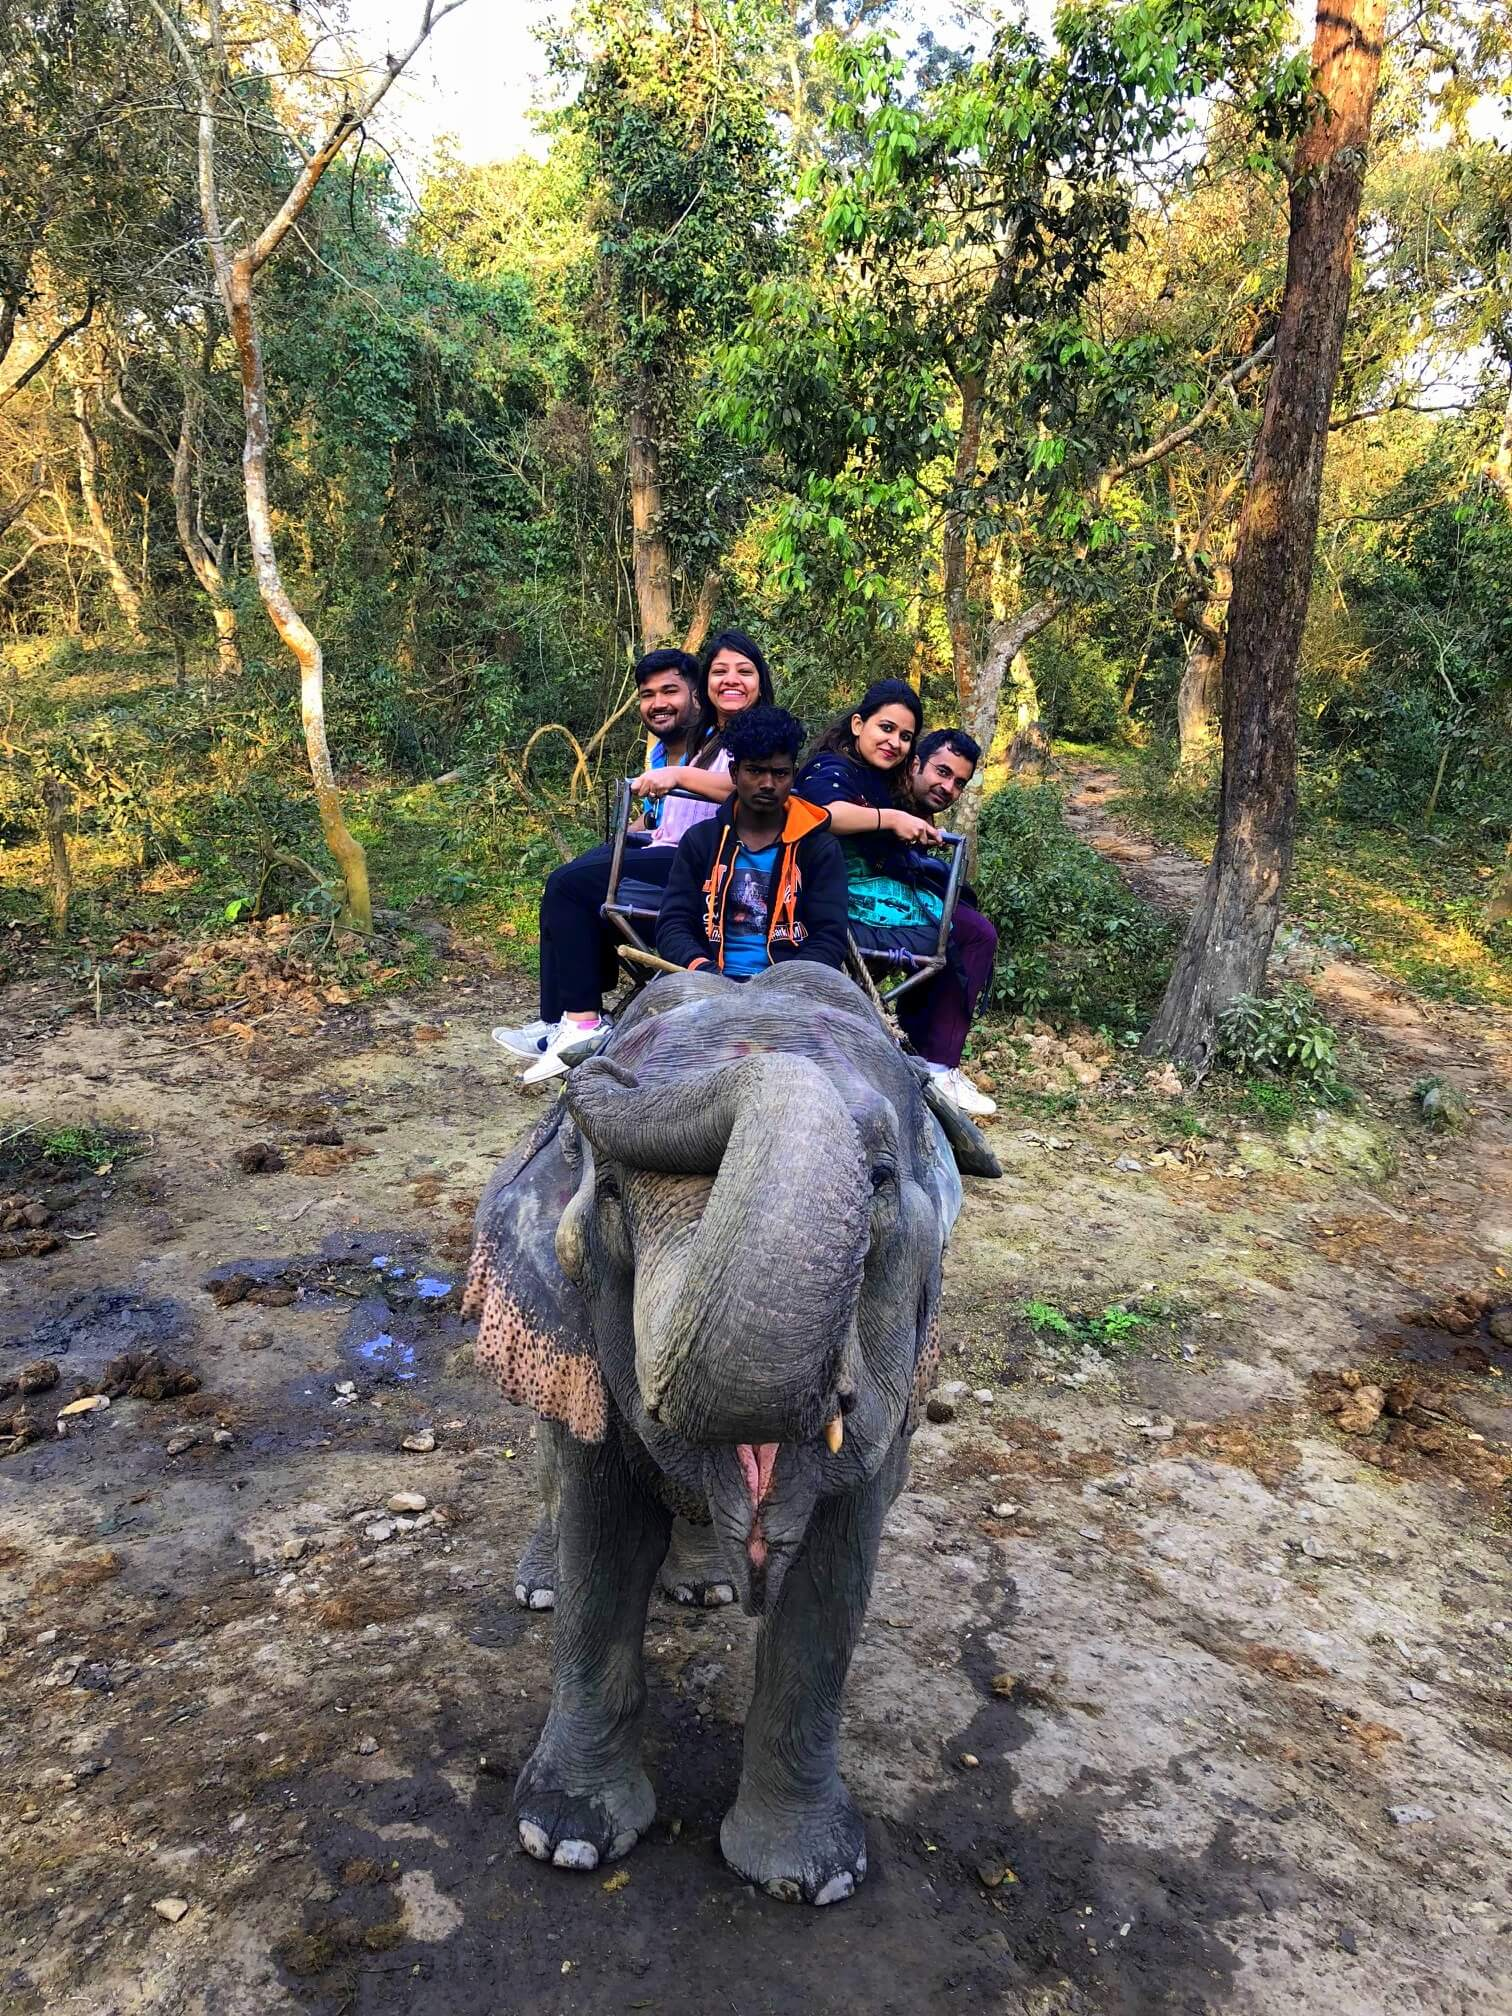 Elephant says good morning - elephant ride kaziranga